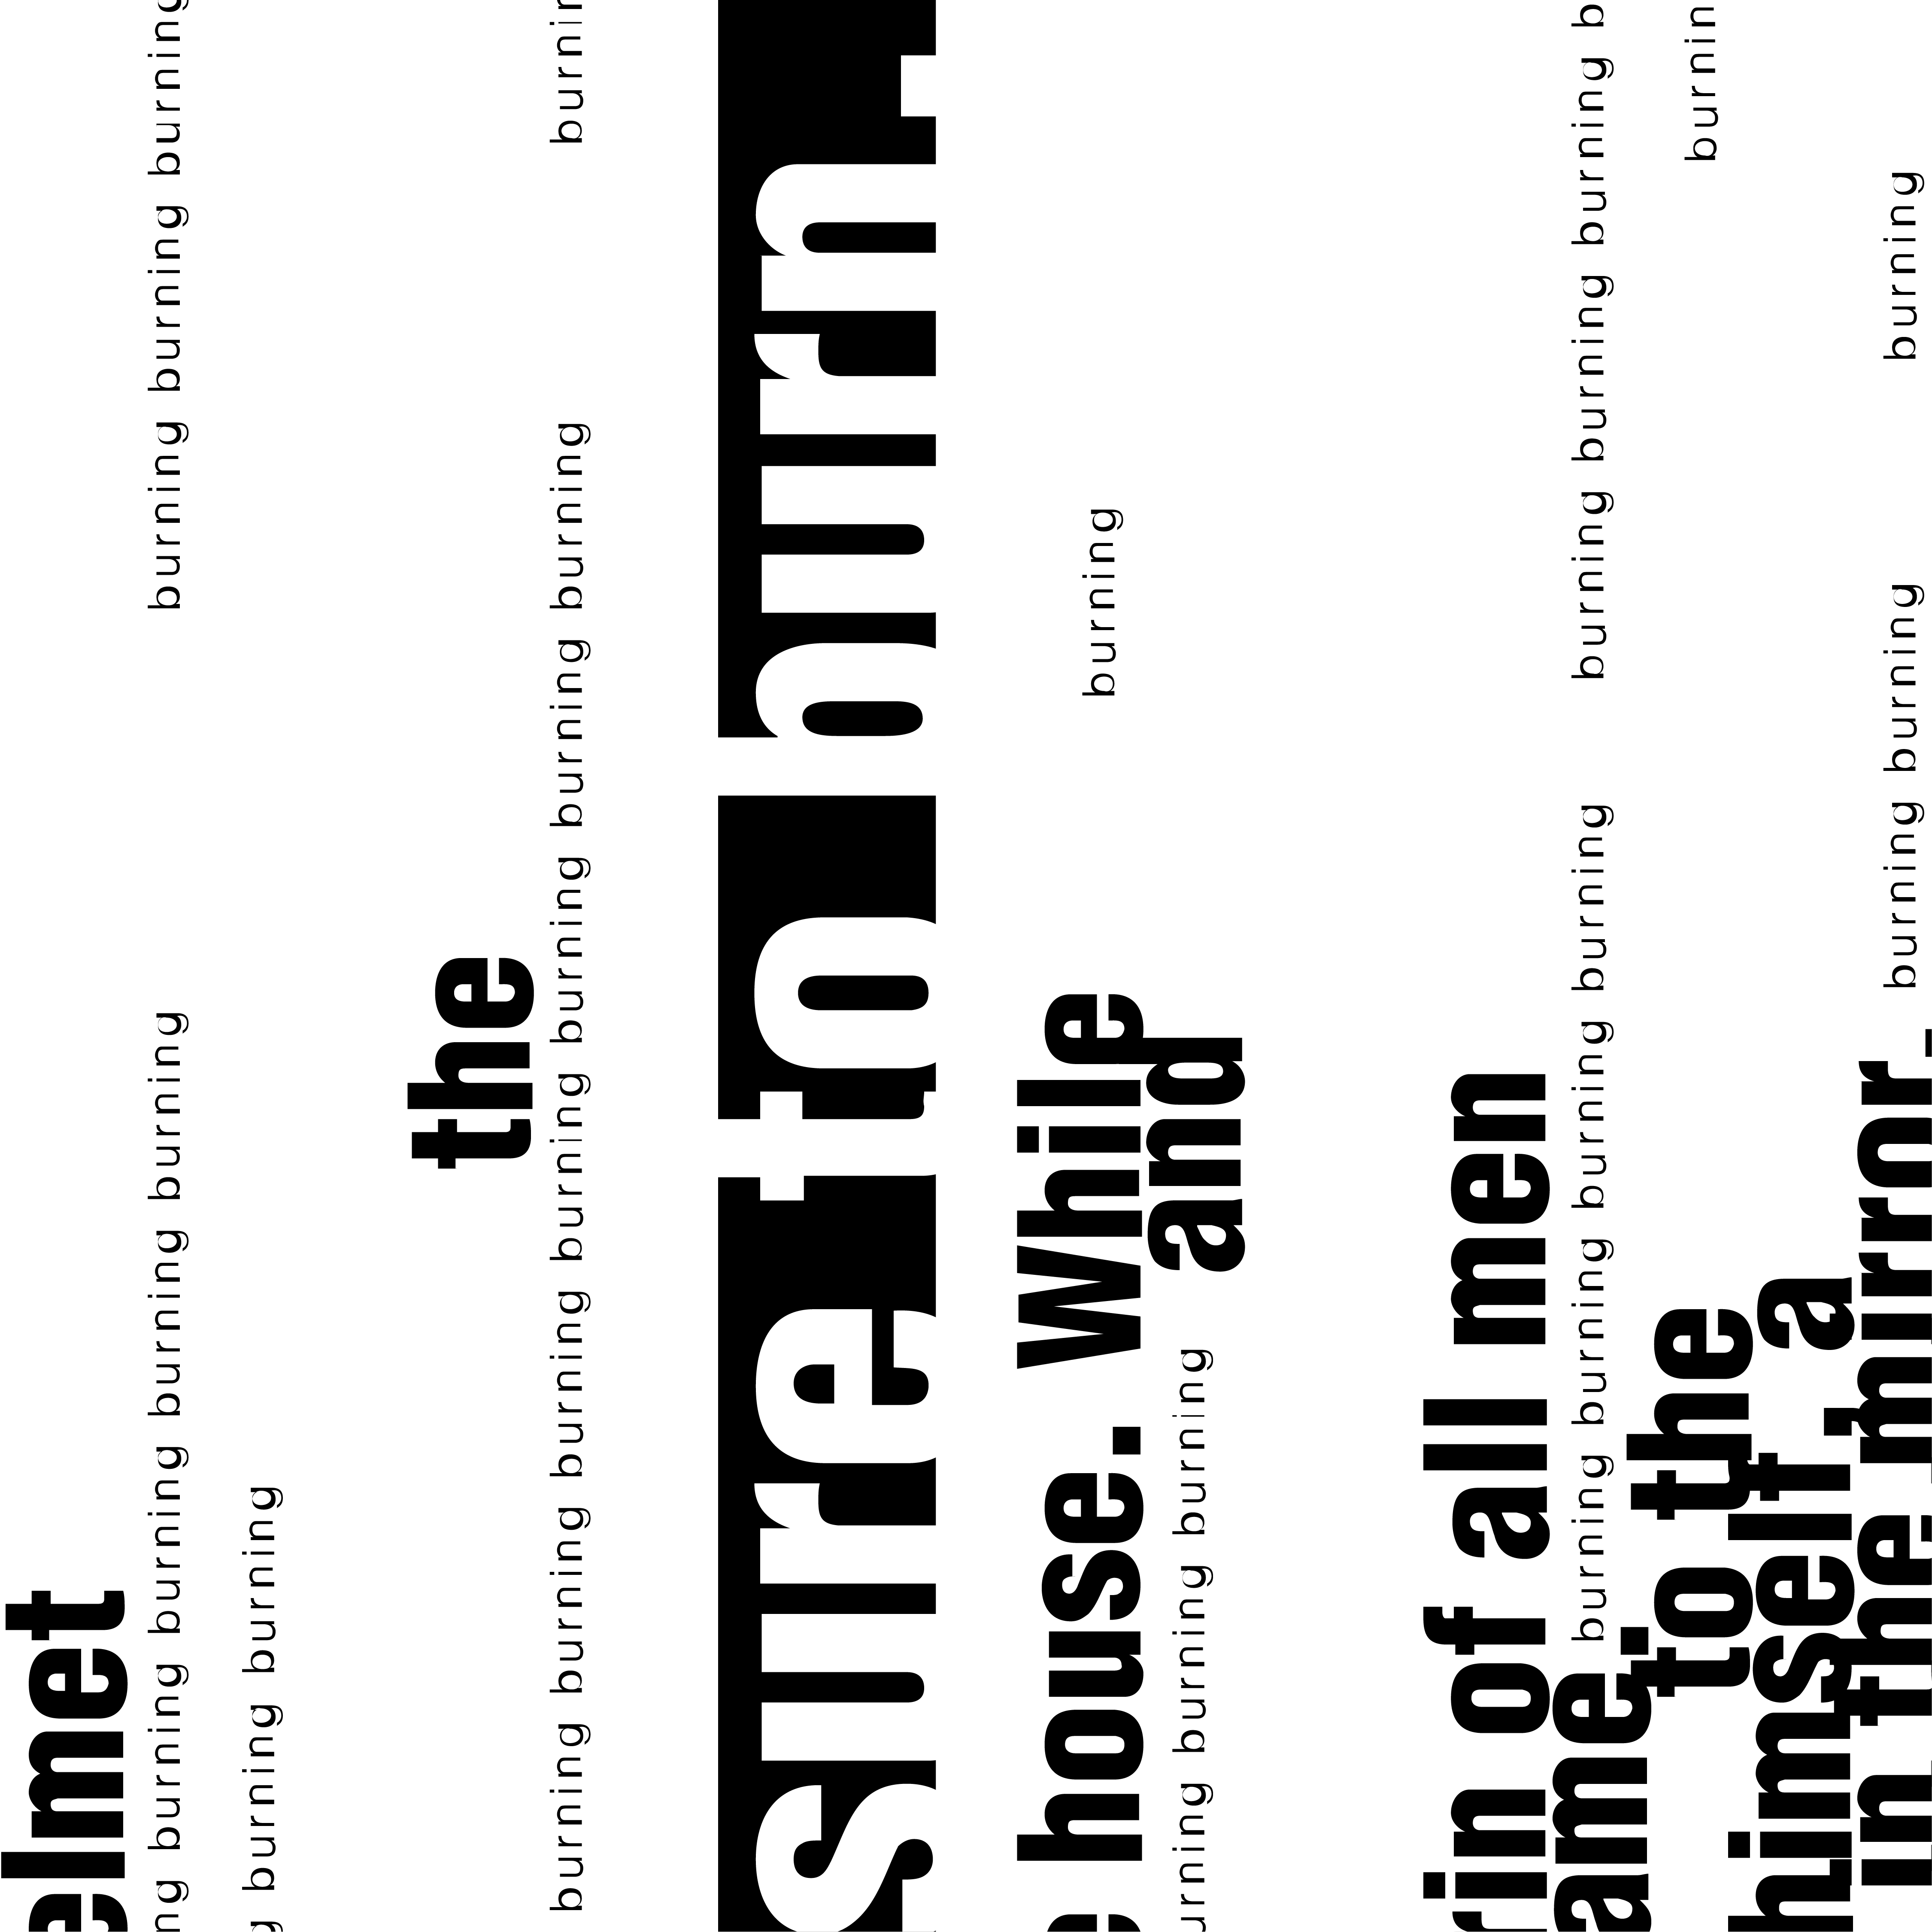 Close up of Fahrenheit 451 Book Cover Design. Text from the first page written at a 90 degree angle.